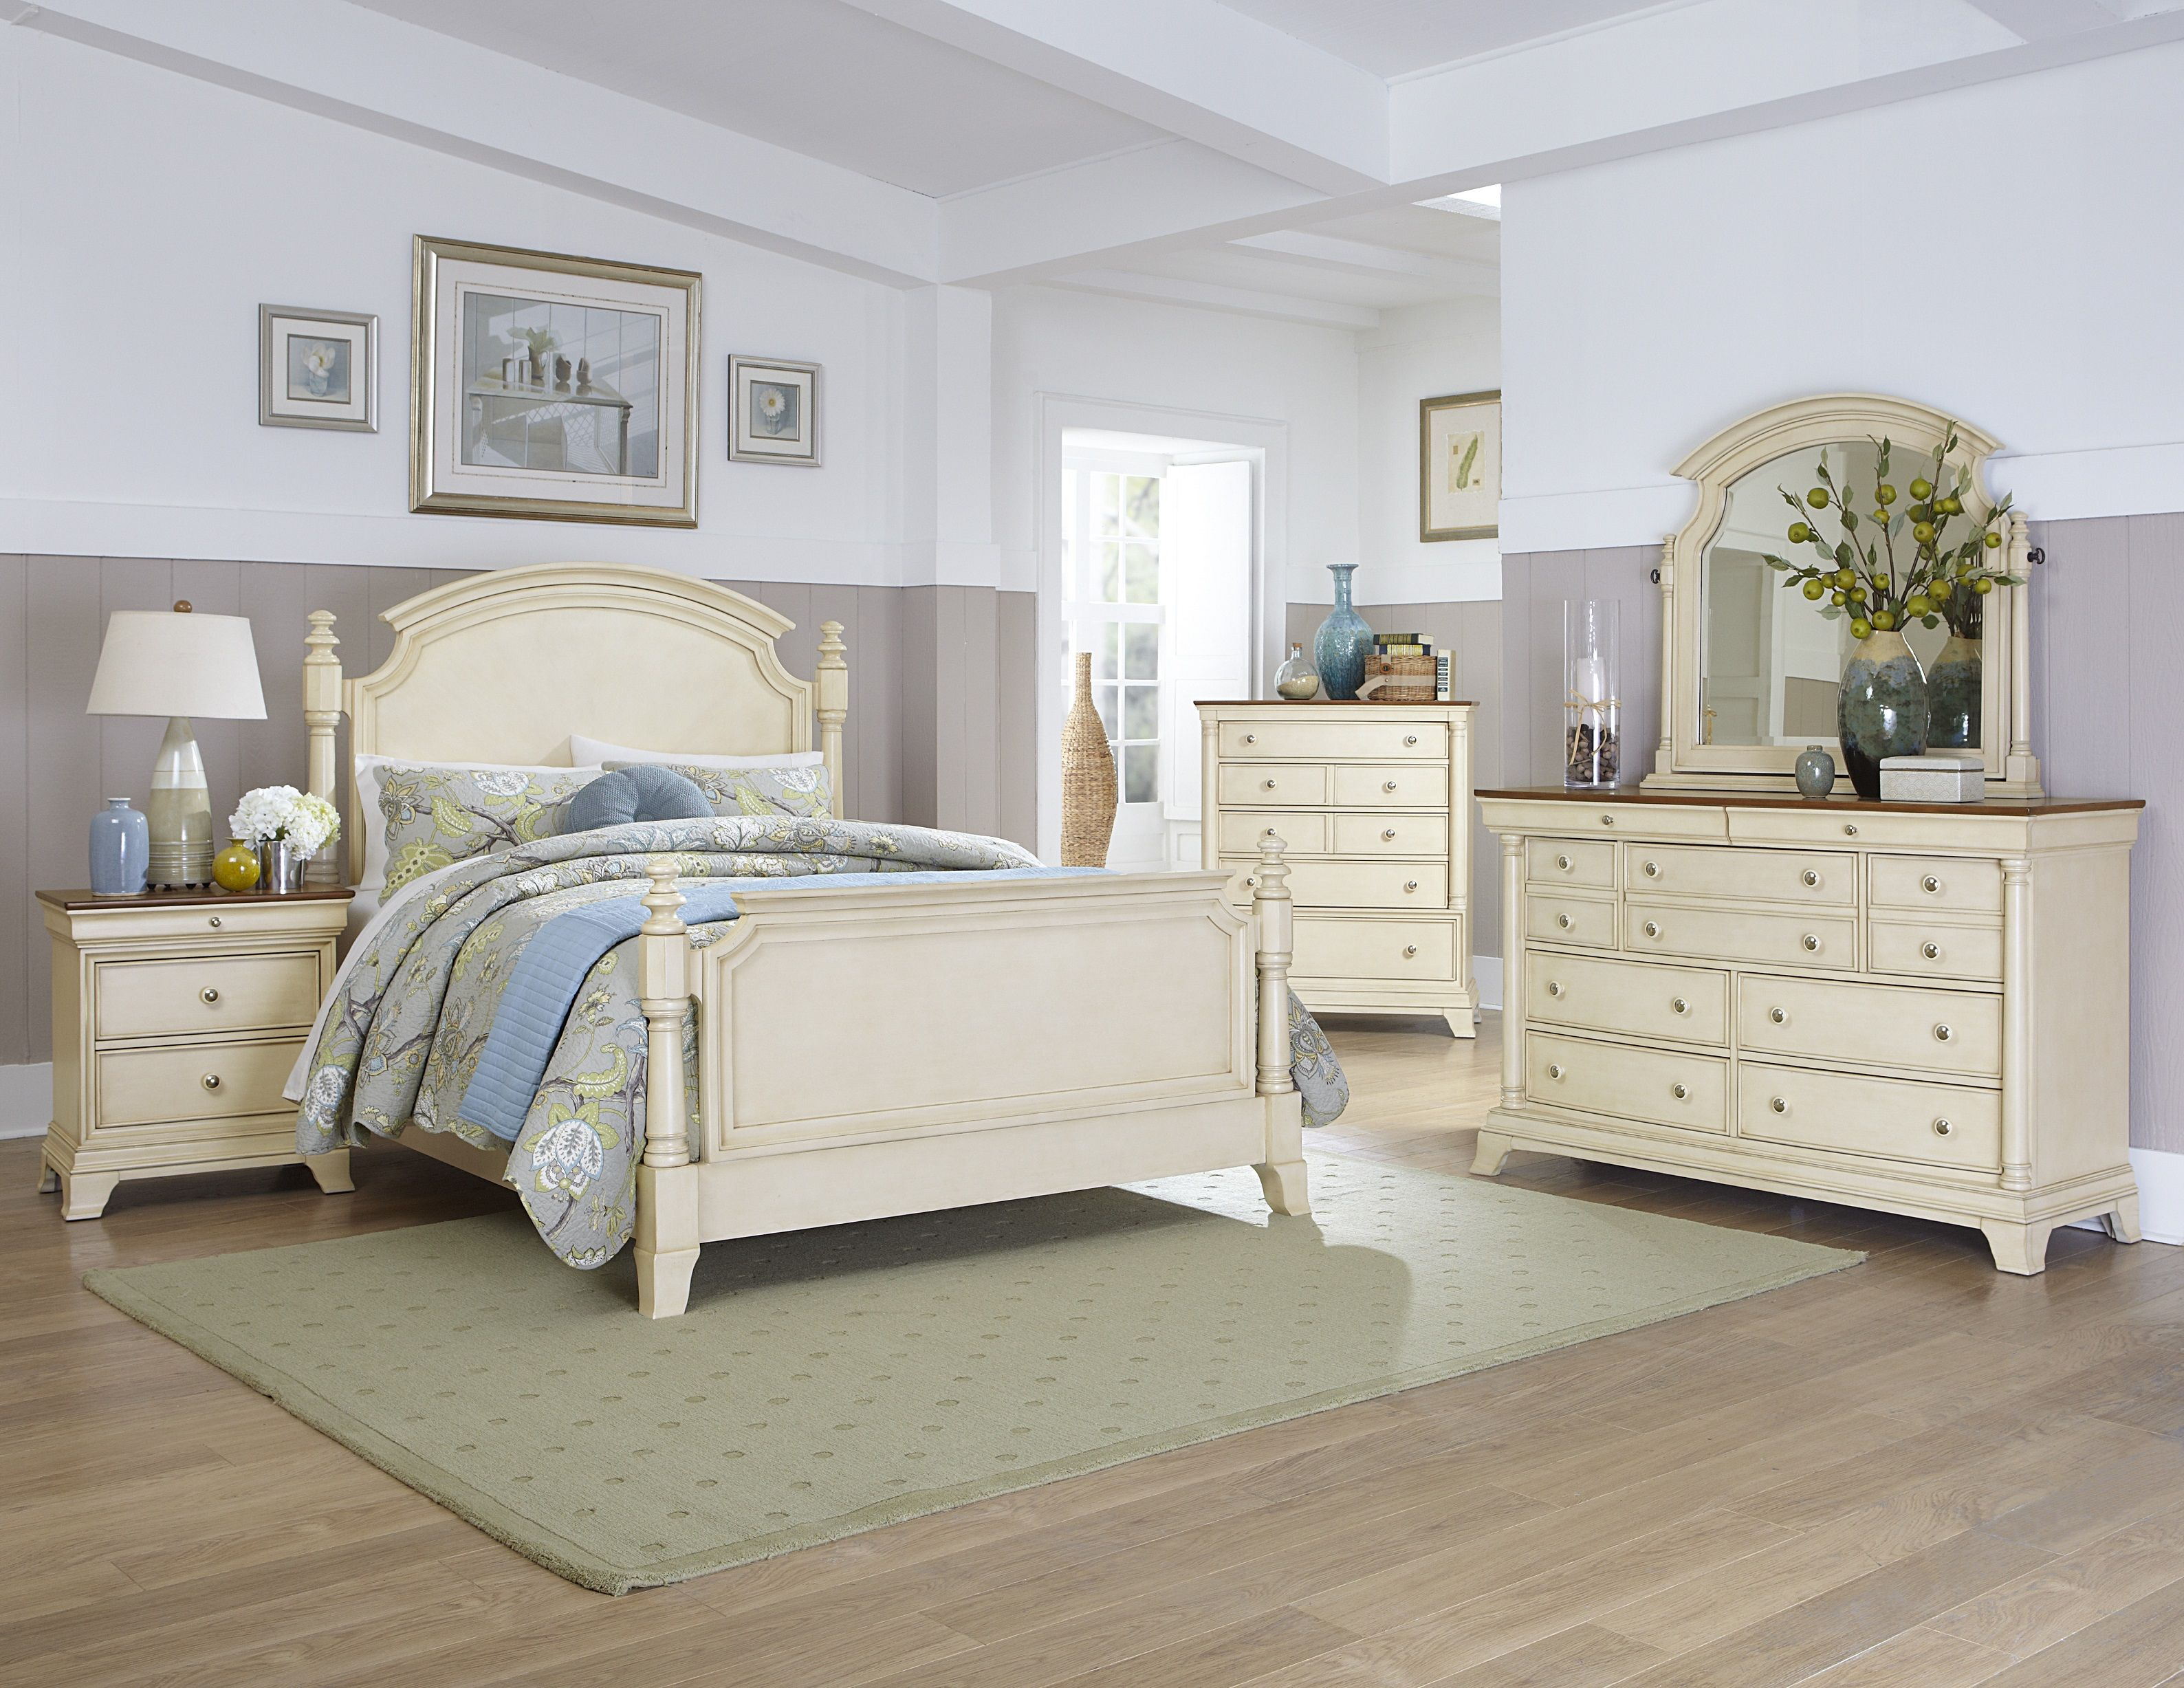 Bedroom furniture sets white design ideas 2017 2018